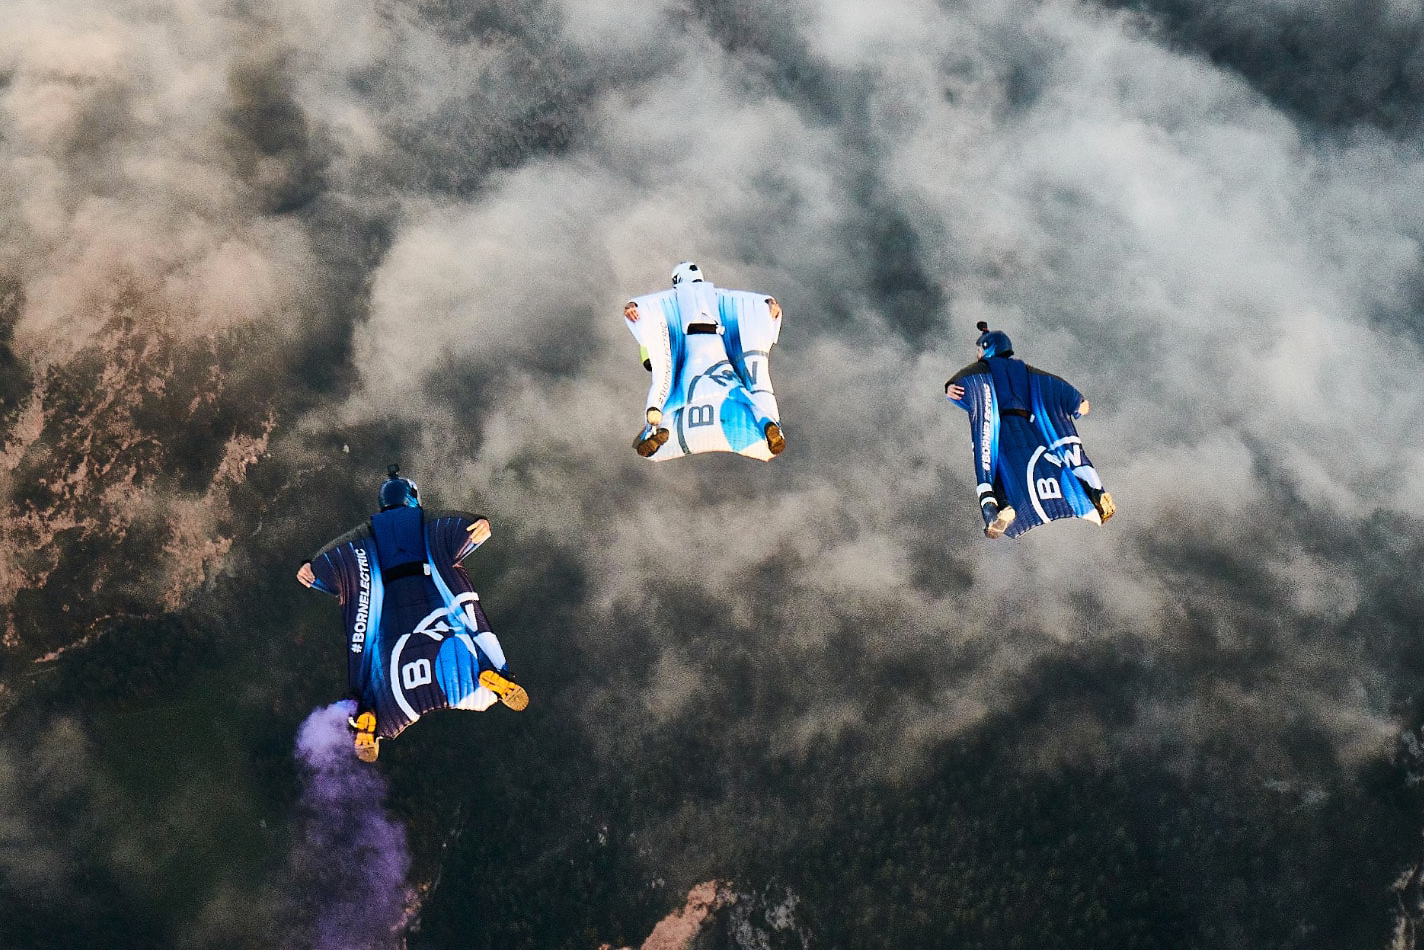 BMW Electric Wingsuit formation flying